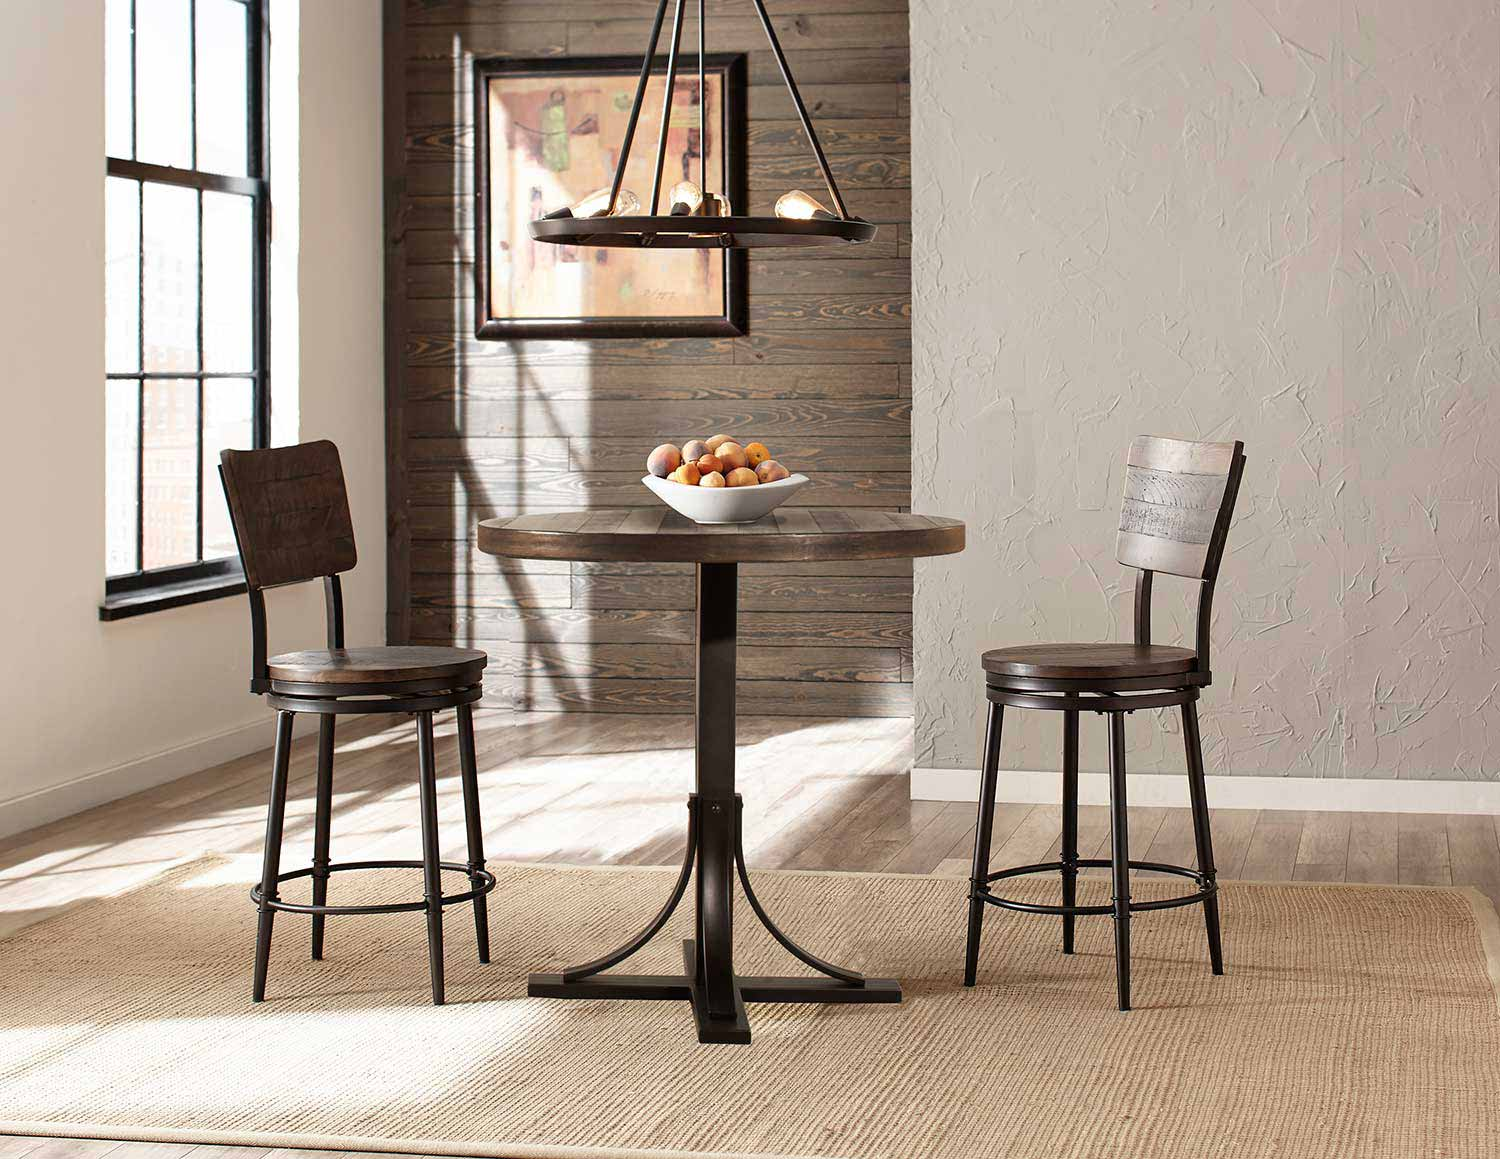 Hillsdale Jennings 3 Piece Counter Height Dining Set with Swivel Counter Height Stools - Walnut Wood/Brown Metal